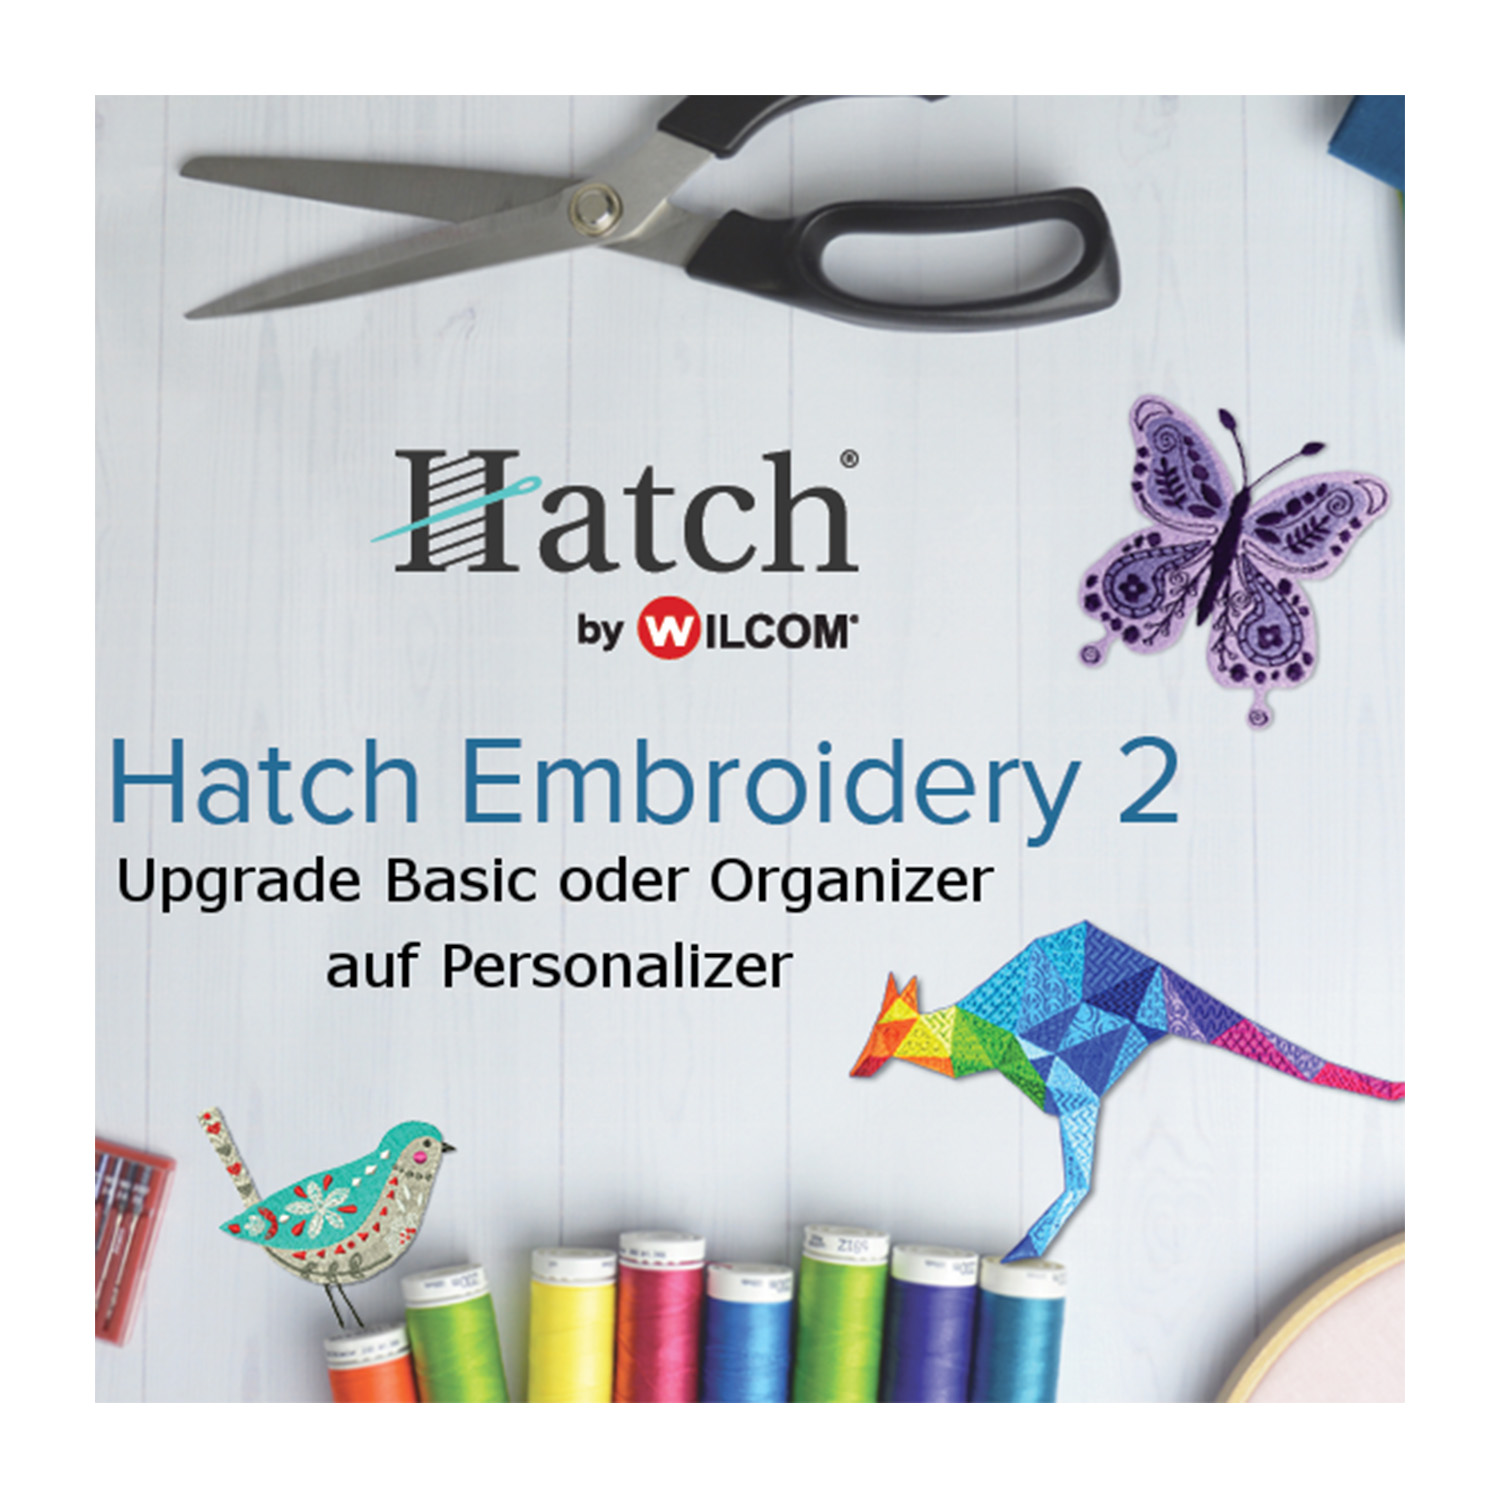 HATCH Upgrade von Basic/Organizer auf Personalizer